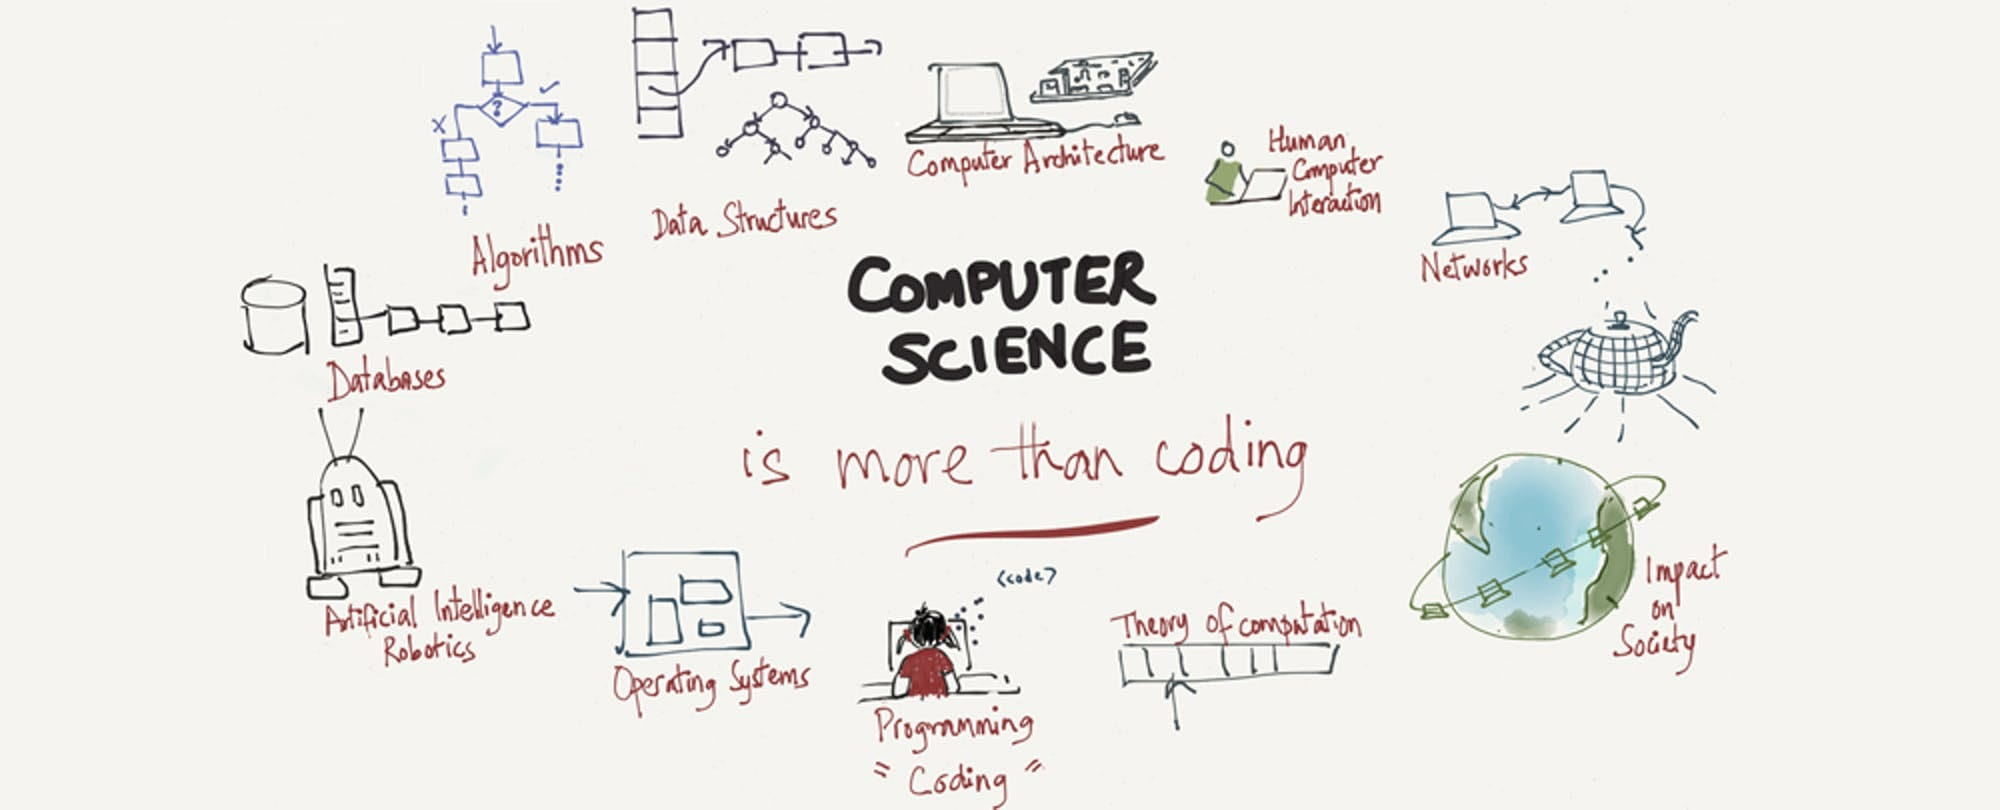 The Bigger Picture Most Computer Science Programs Get Wrong